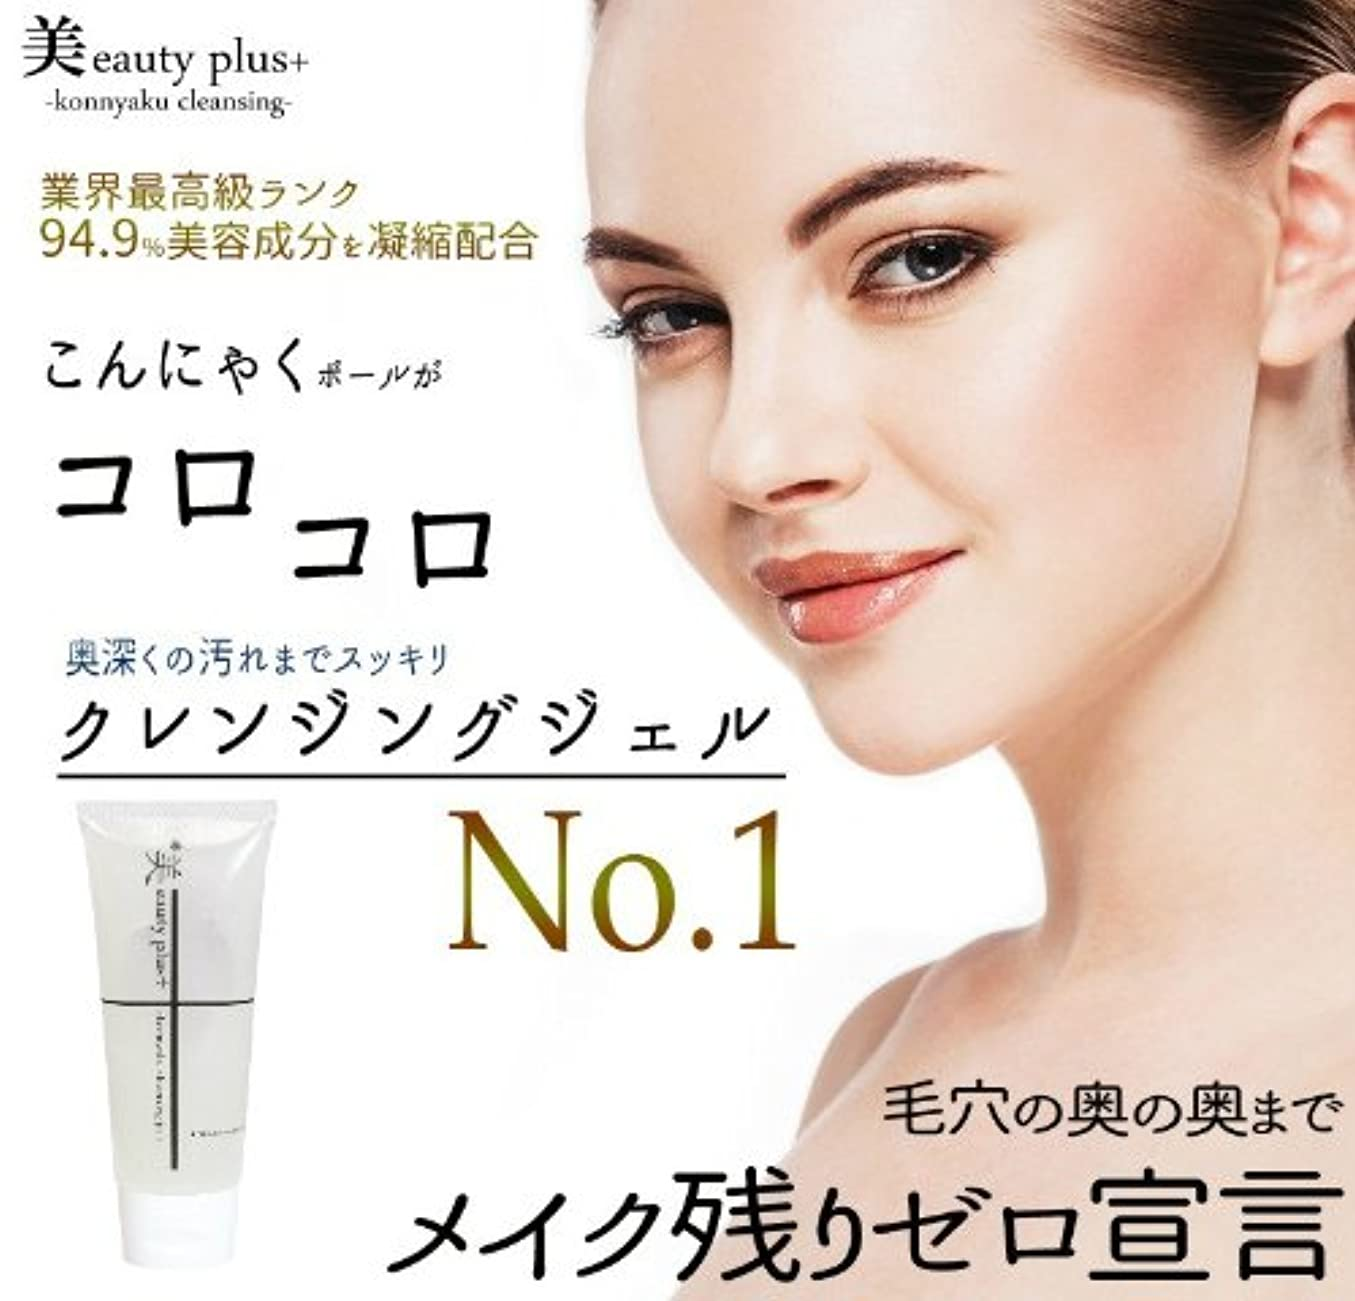 賃金請願者捧げる美eauty Plus+ Konnyaku Cleansing Jel